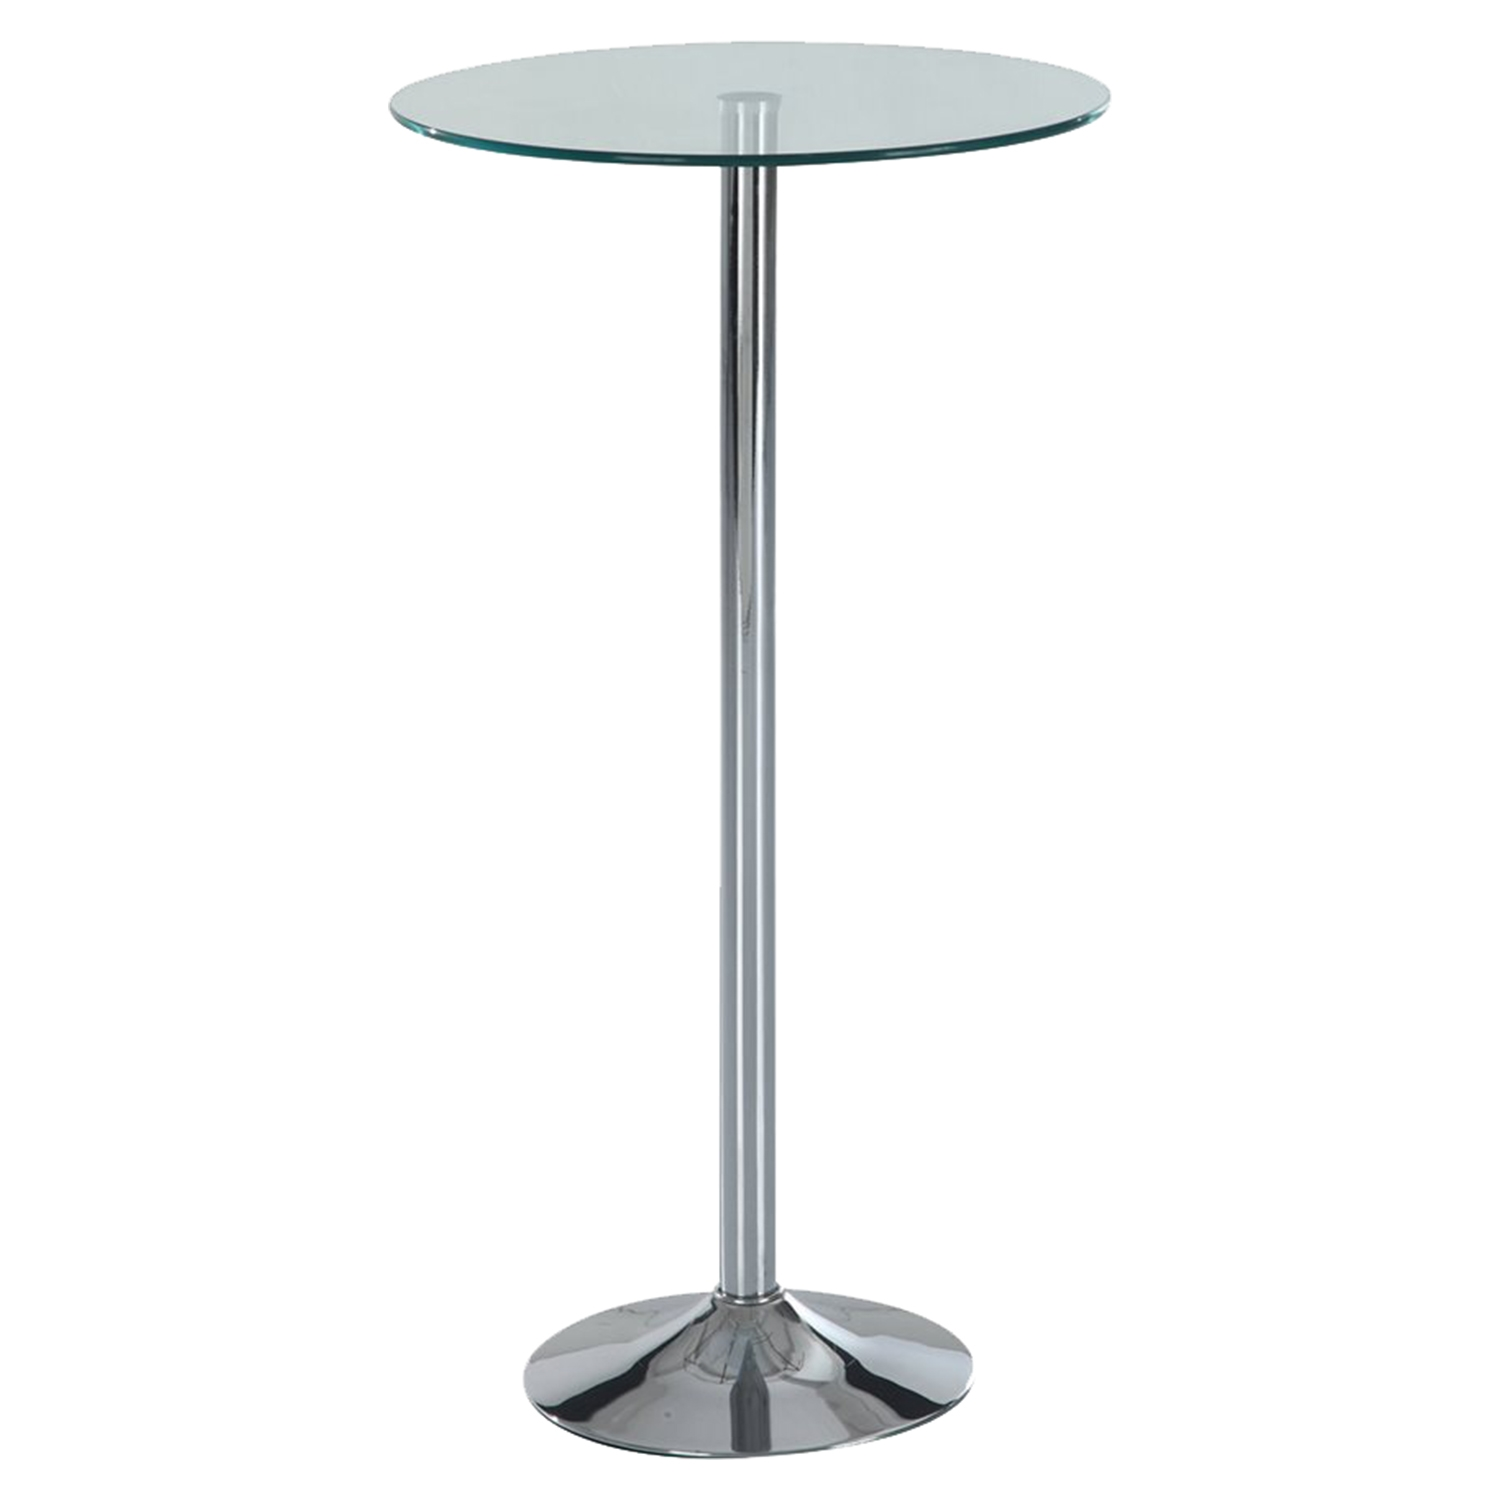 Alana Bar Table, Chrome Leg - GLO-M828BT-M